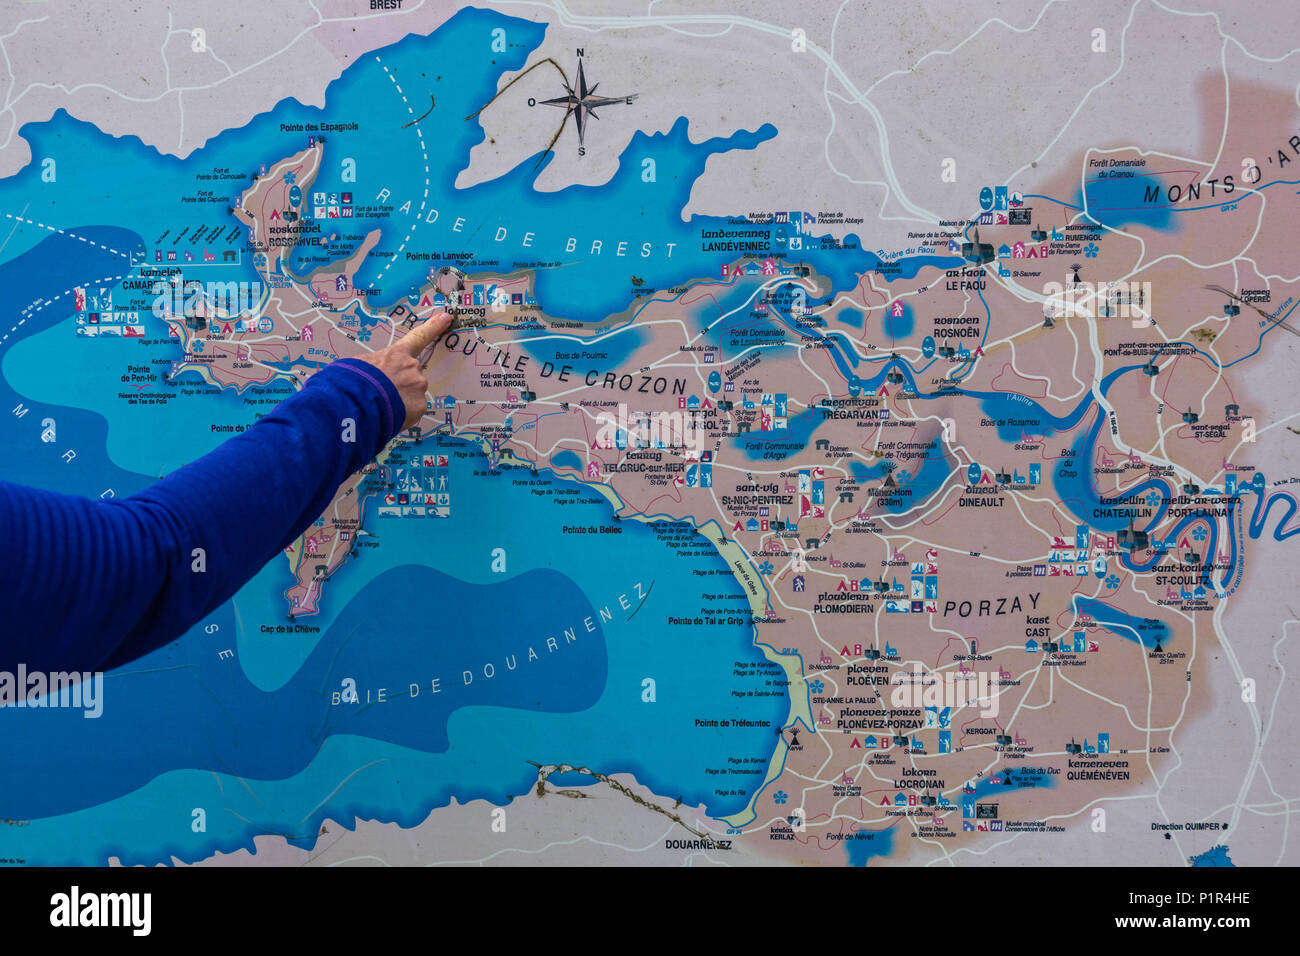 Map Of Northern France Coastline.Crozon Morgat On The Brittany Coast Path In Northern France In Mid